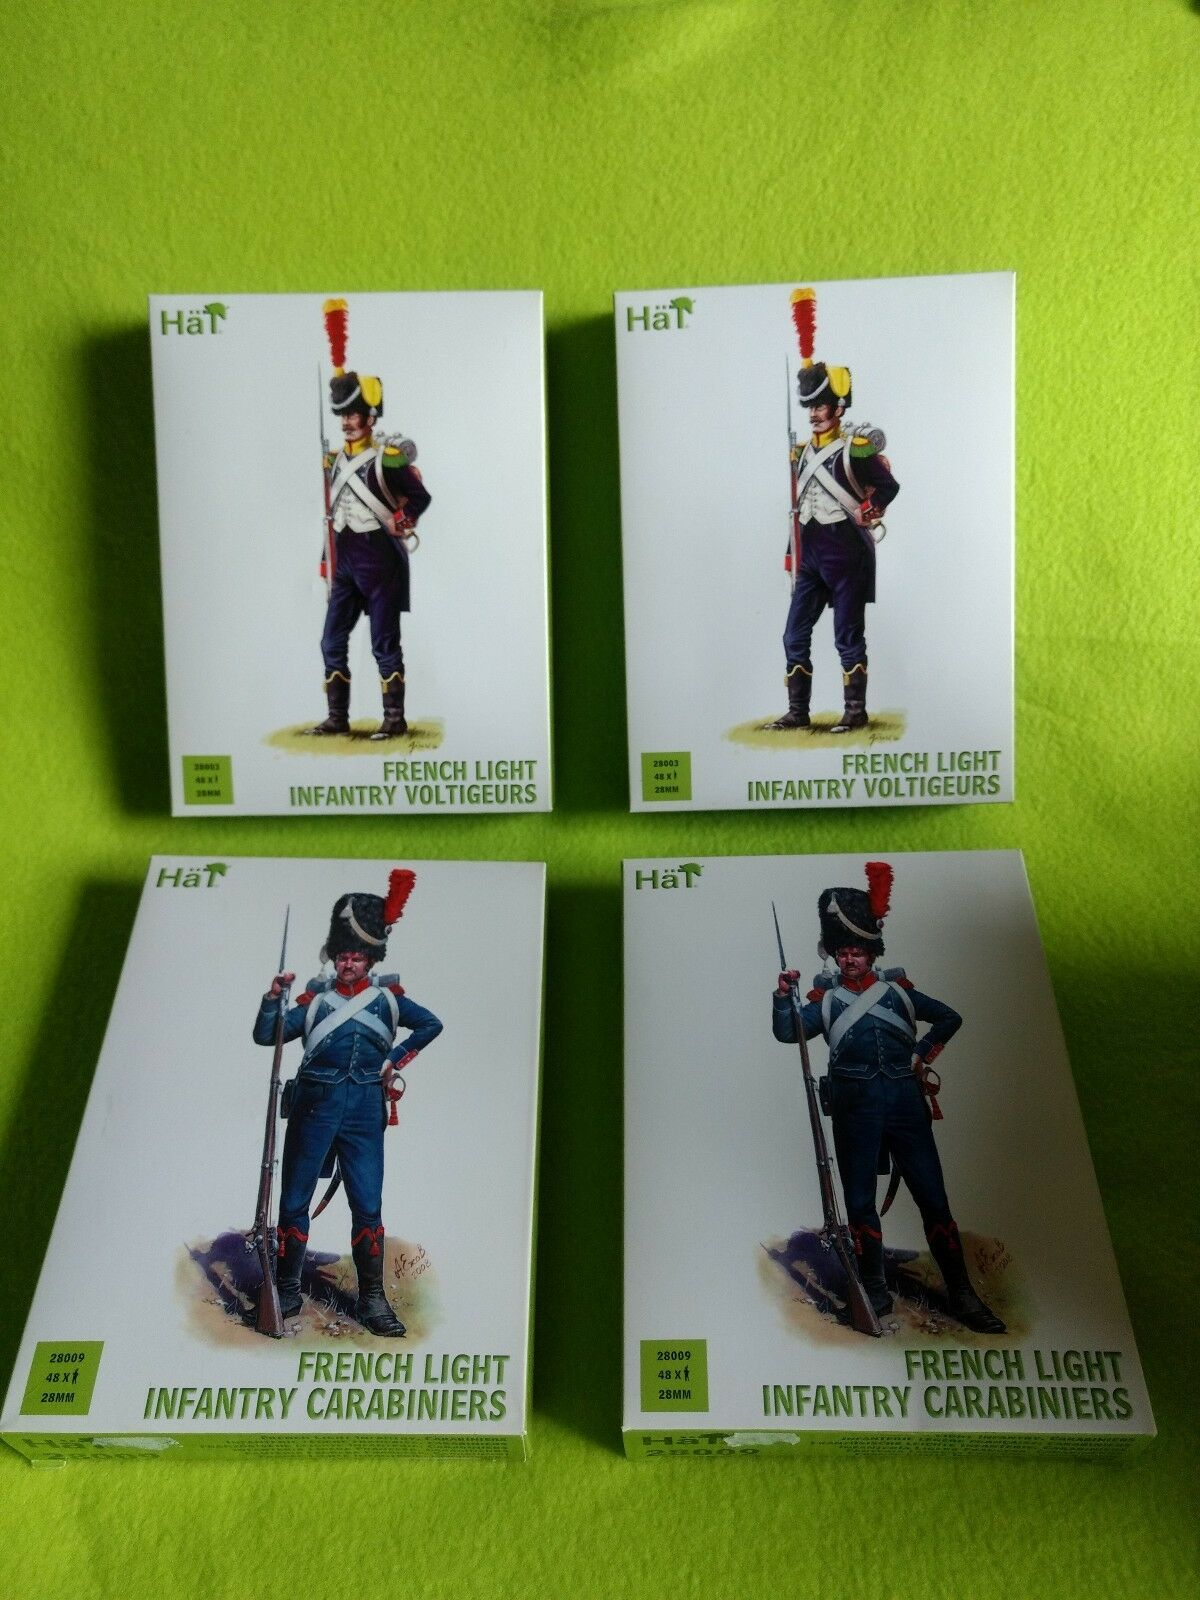 2x HaT 28009 + 2x 28003 French Infantry Napoleonic Carabiniers figure 1 72 scale